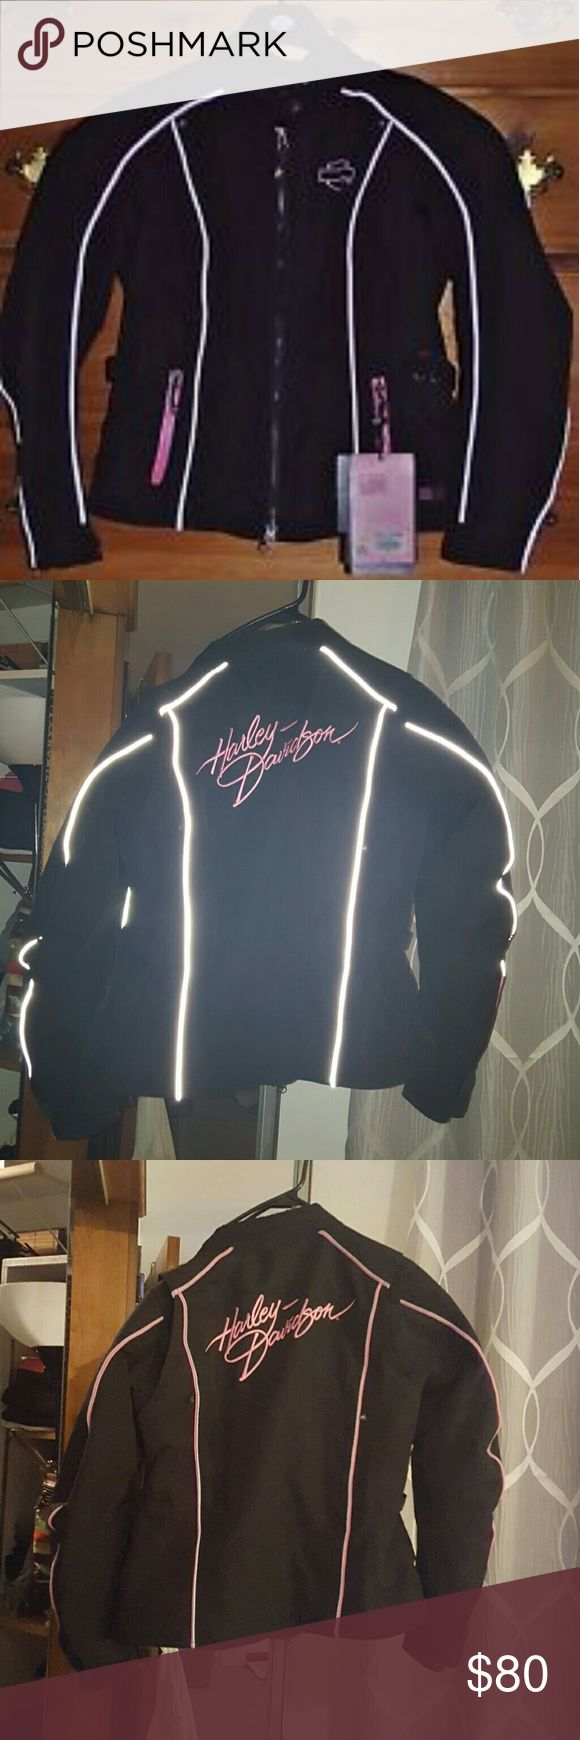 Harley Davidson jacket Harley Davidson jacket  Black with Pink detail and reflective piping throughout the body and sleeves.  Brand new condition.  Only worn once. Harley-Davidson Jackets & Coats